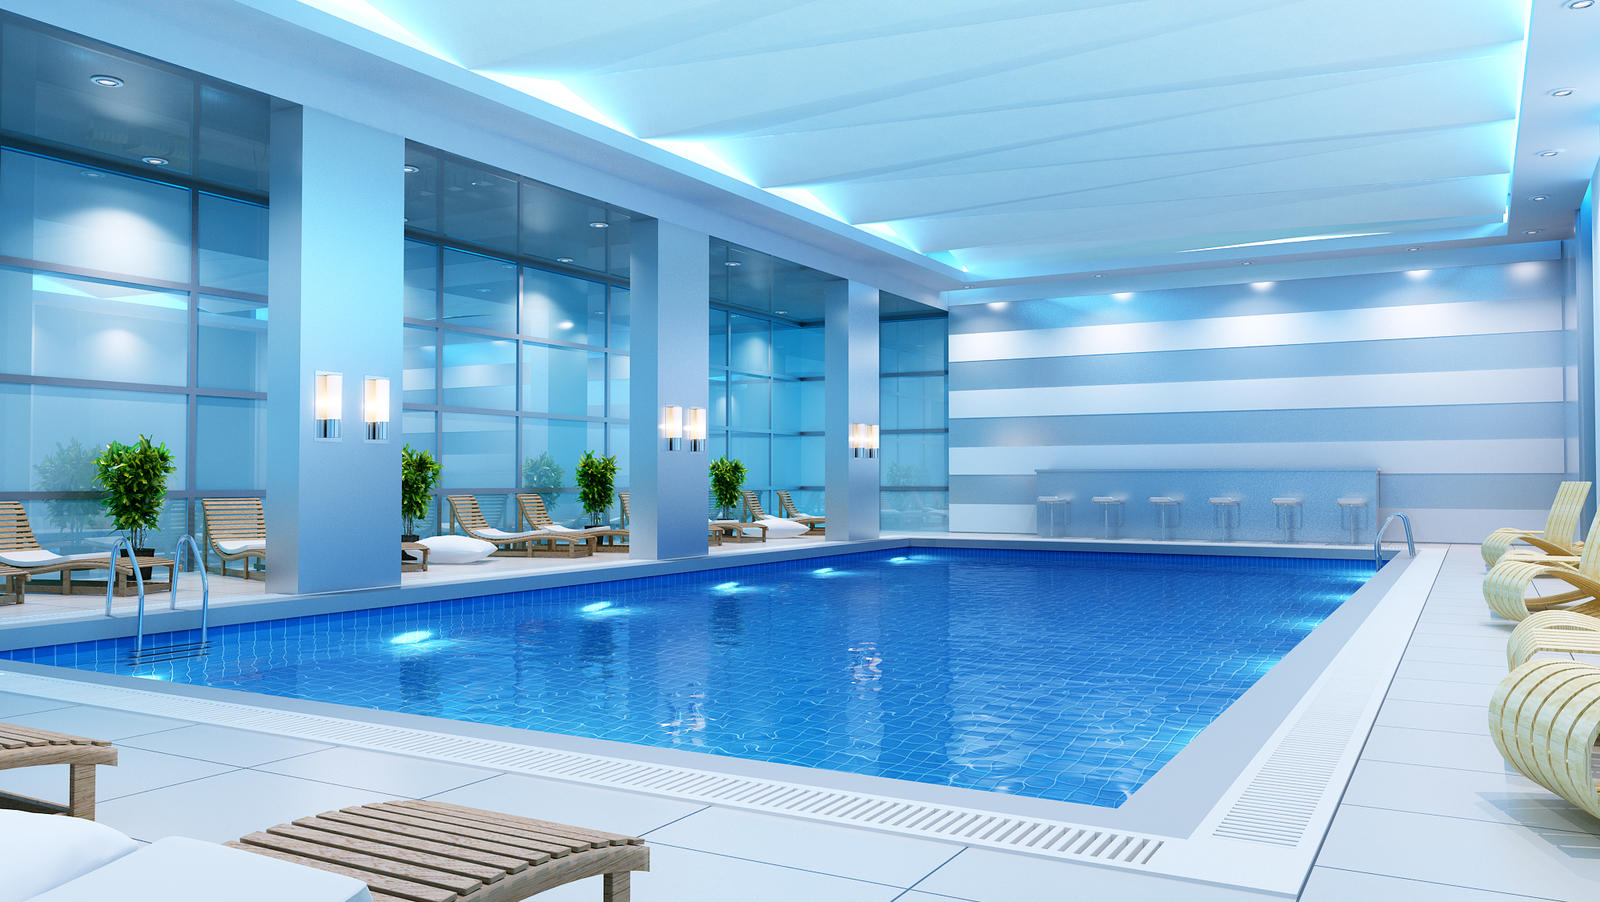 Swimming Pool Design By Tolcha On Deviantart